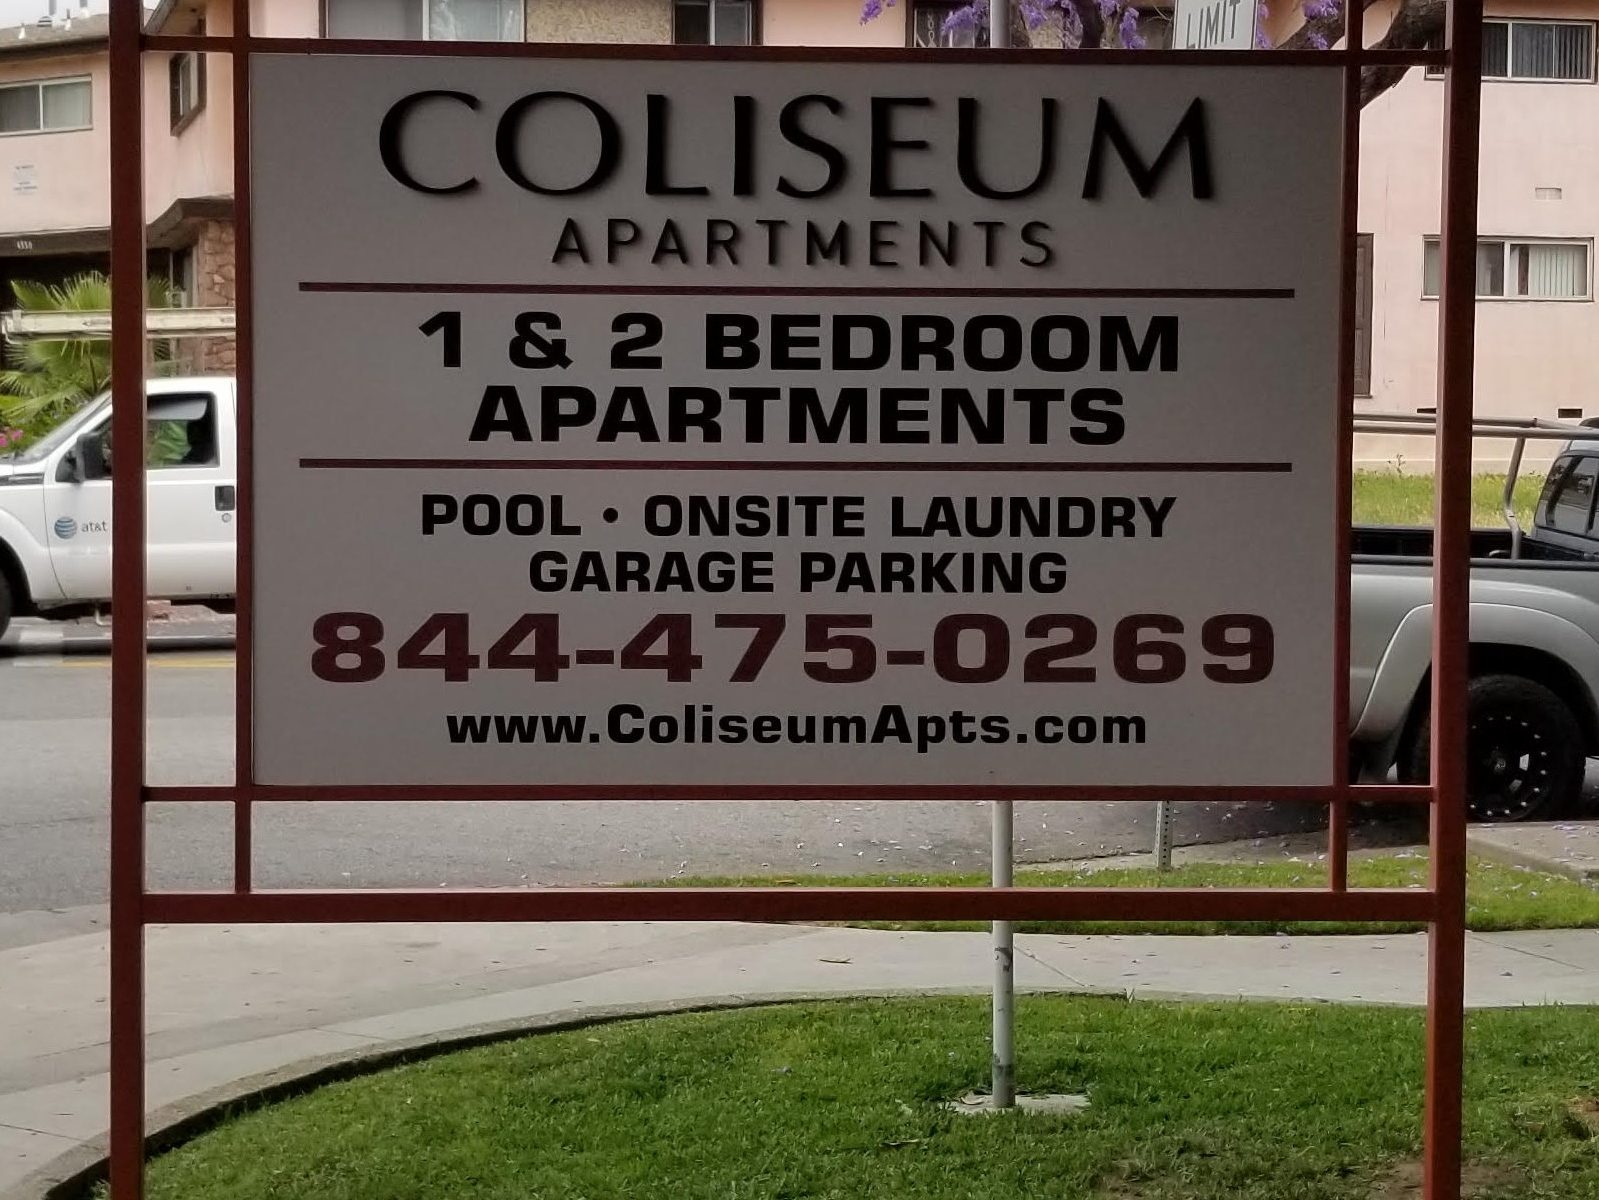 Monument post and panel sign for Coliseum Apartments. Now this Los Angeles community will be more visible with the signage putting it on the map!